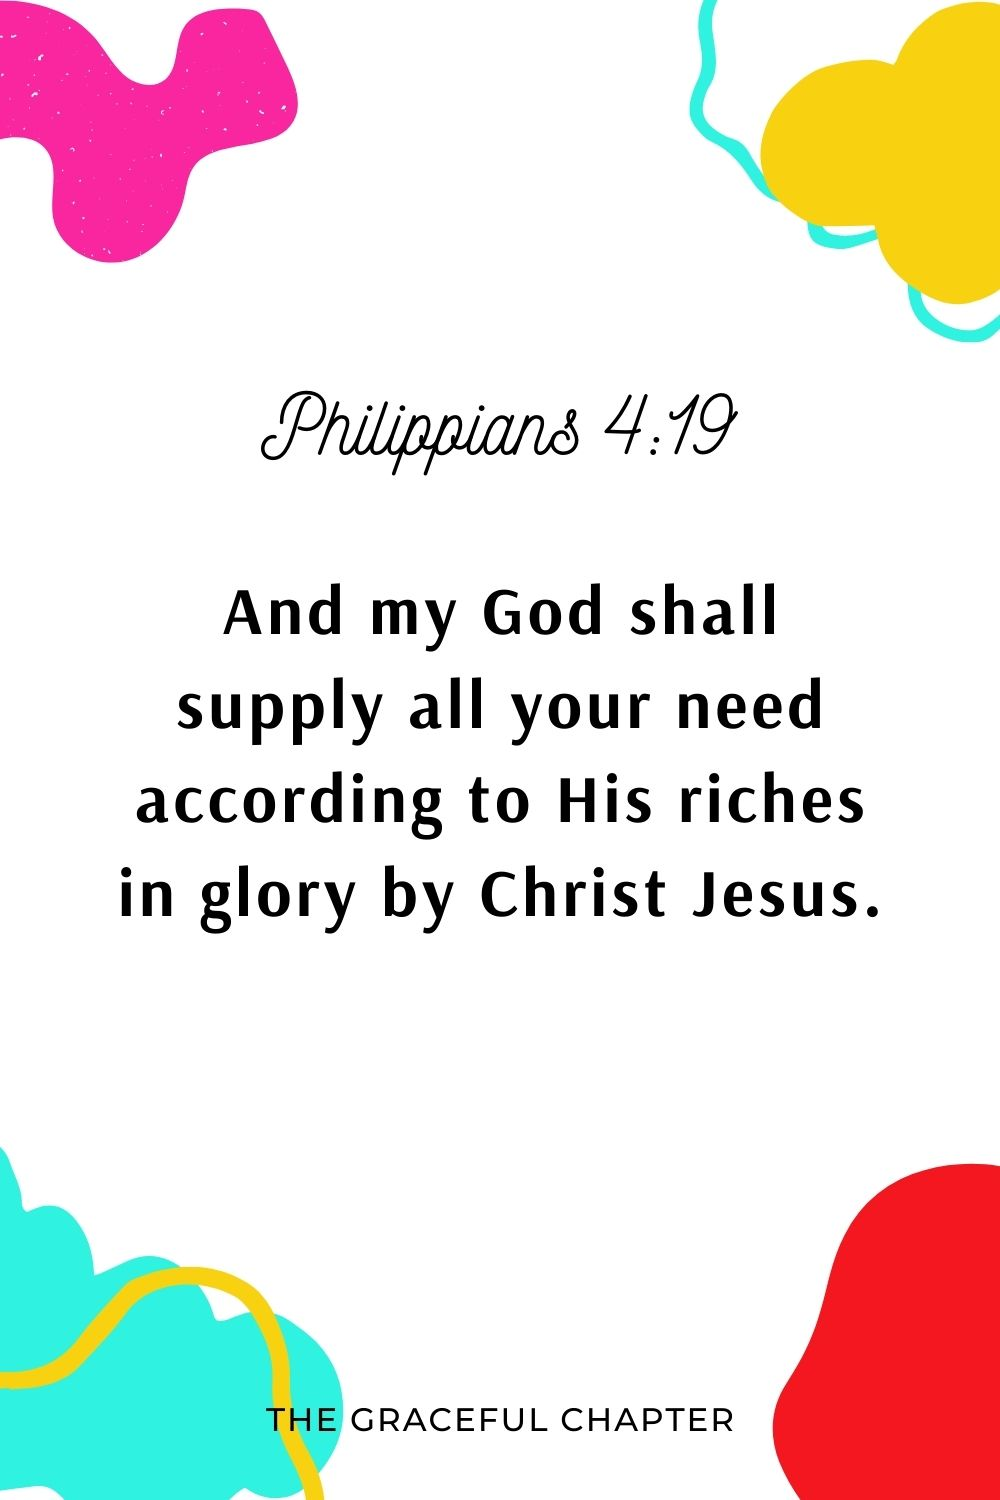 And my God shall supply all your need according to His riches in glory by Christ Jesus. Philippians 4:19